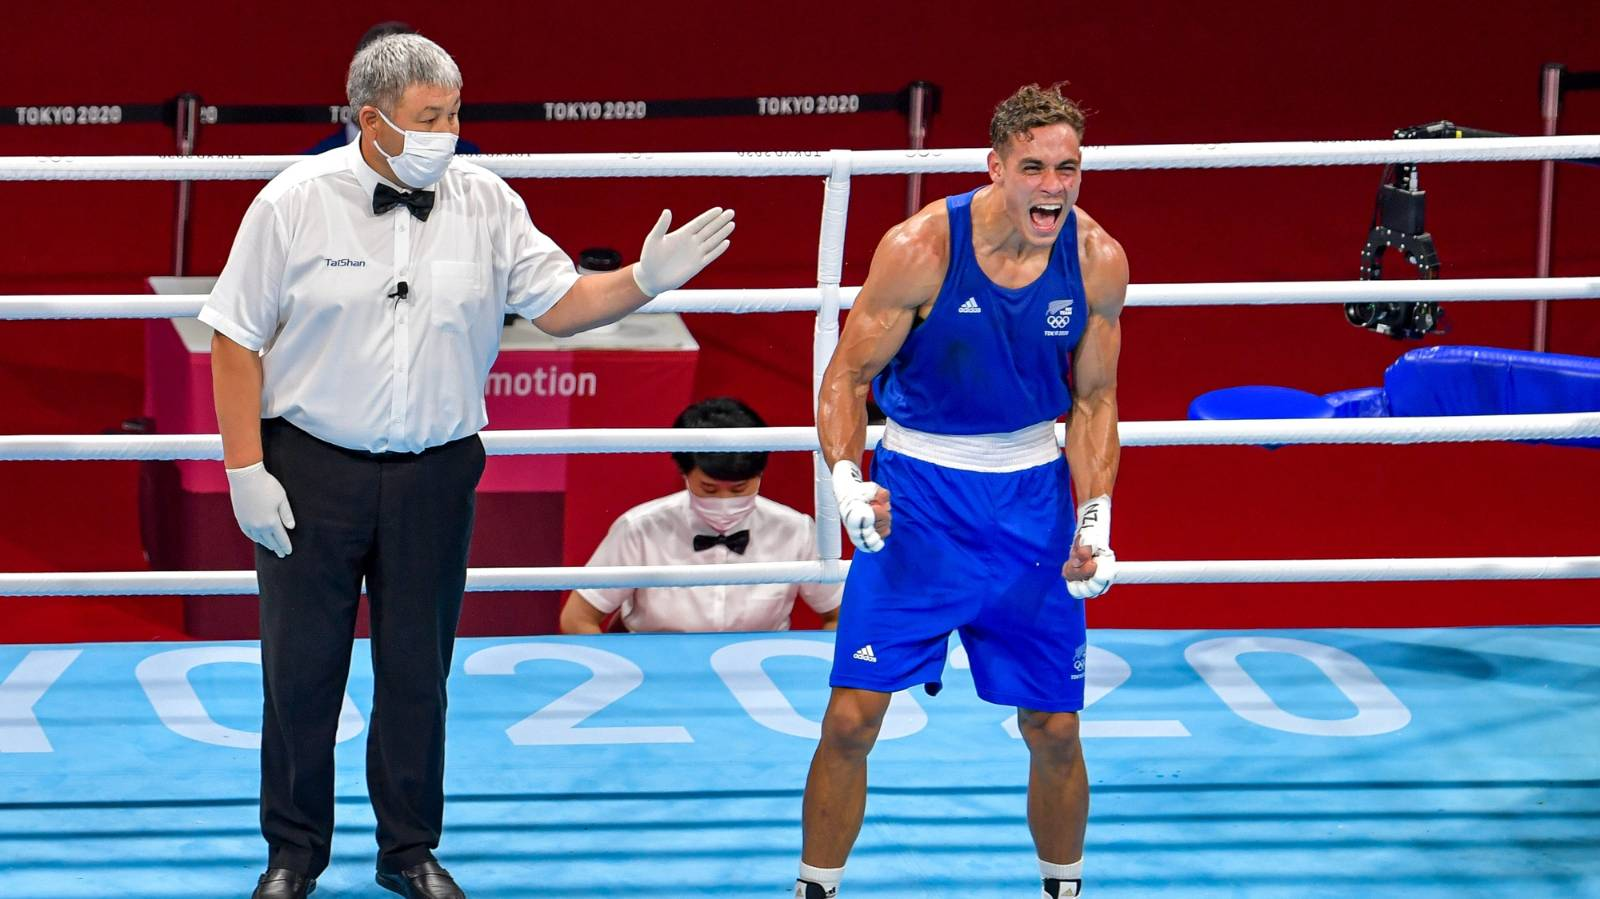 Nyika assured of Olympic medal after beating Belarusian